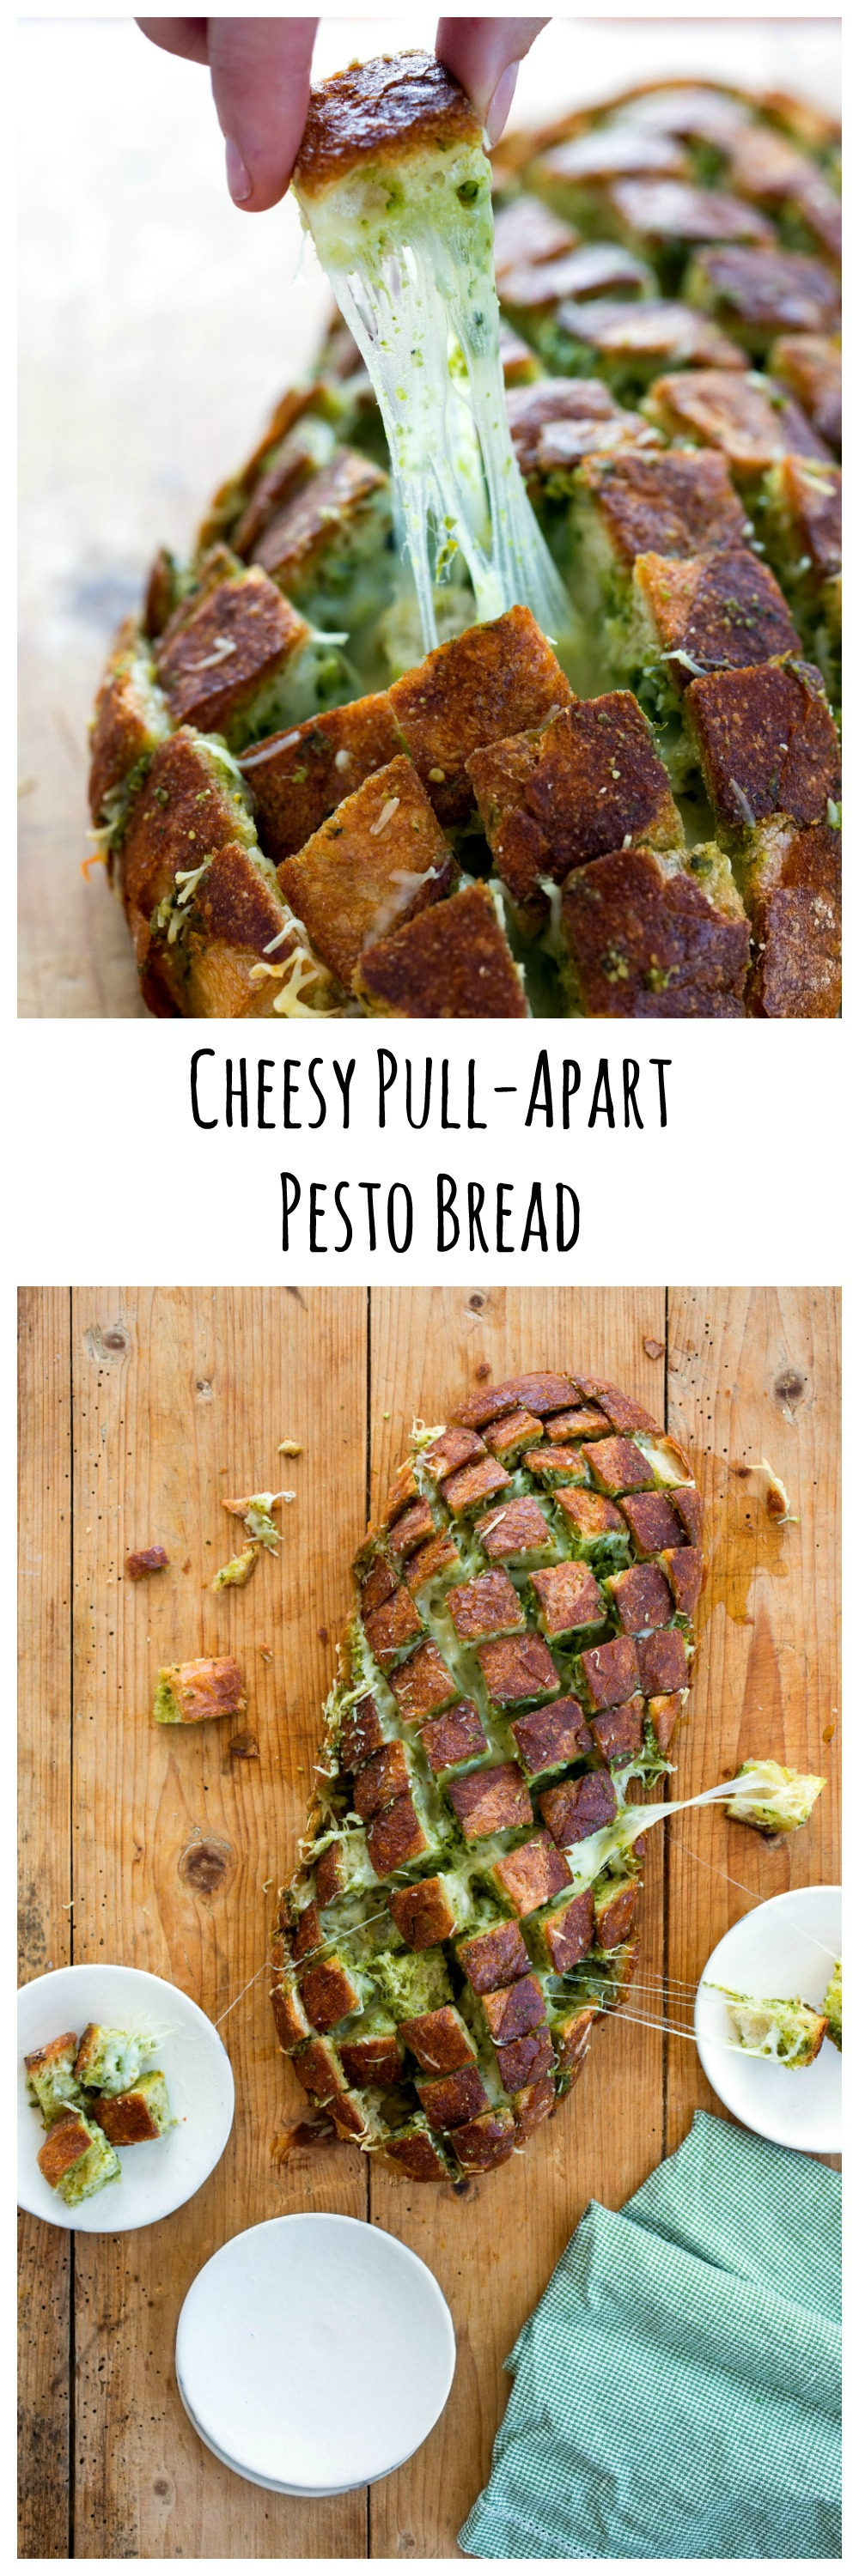 Cheesy Pull-Apart Pesto Bread recipe from Carla Hall and The Chew on ShockinglyDelicious.com